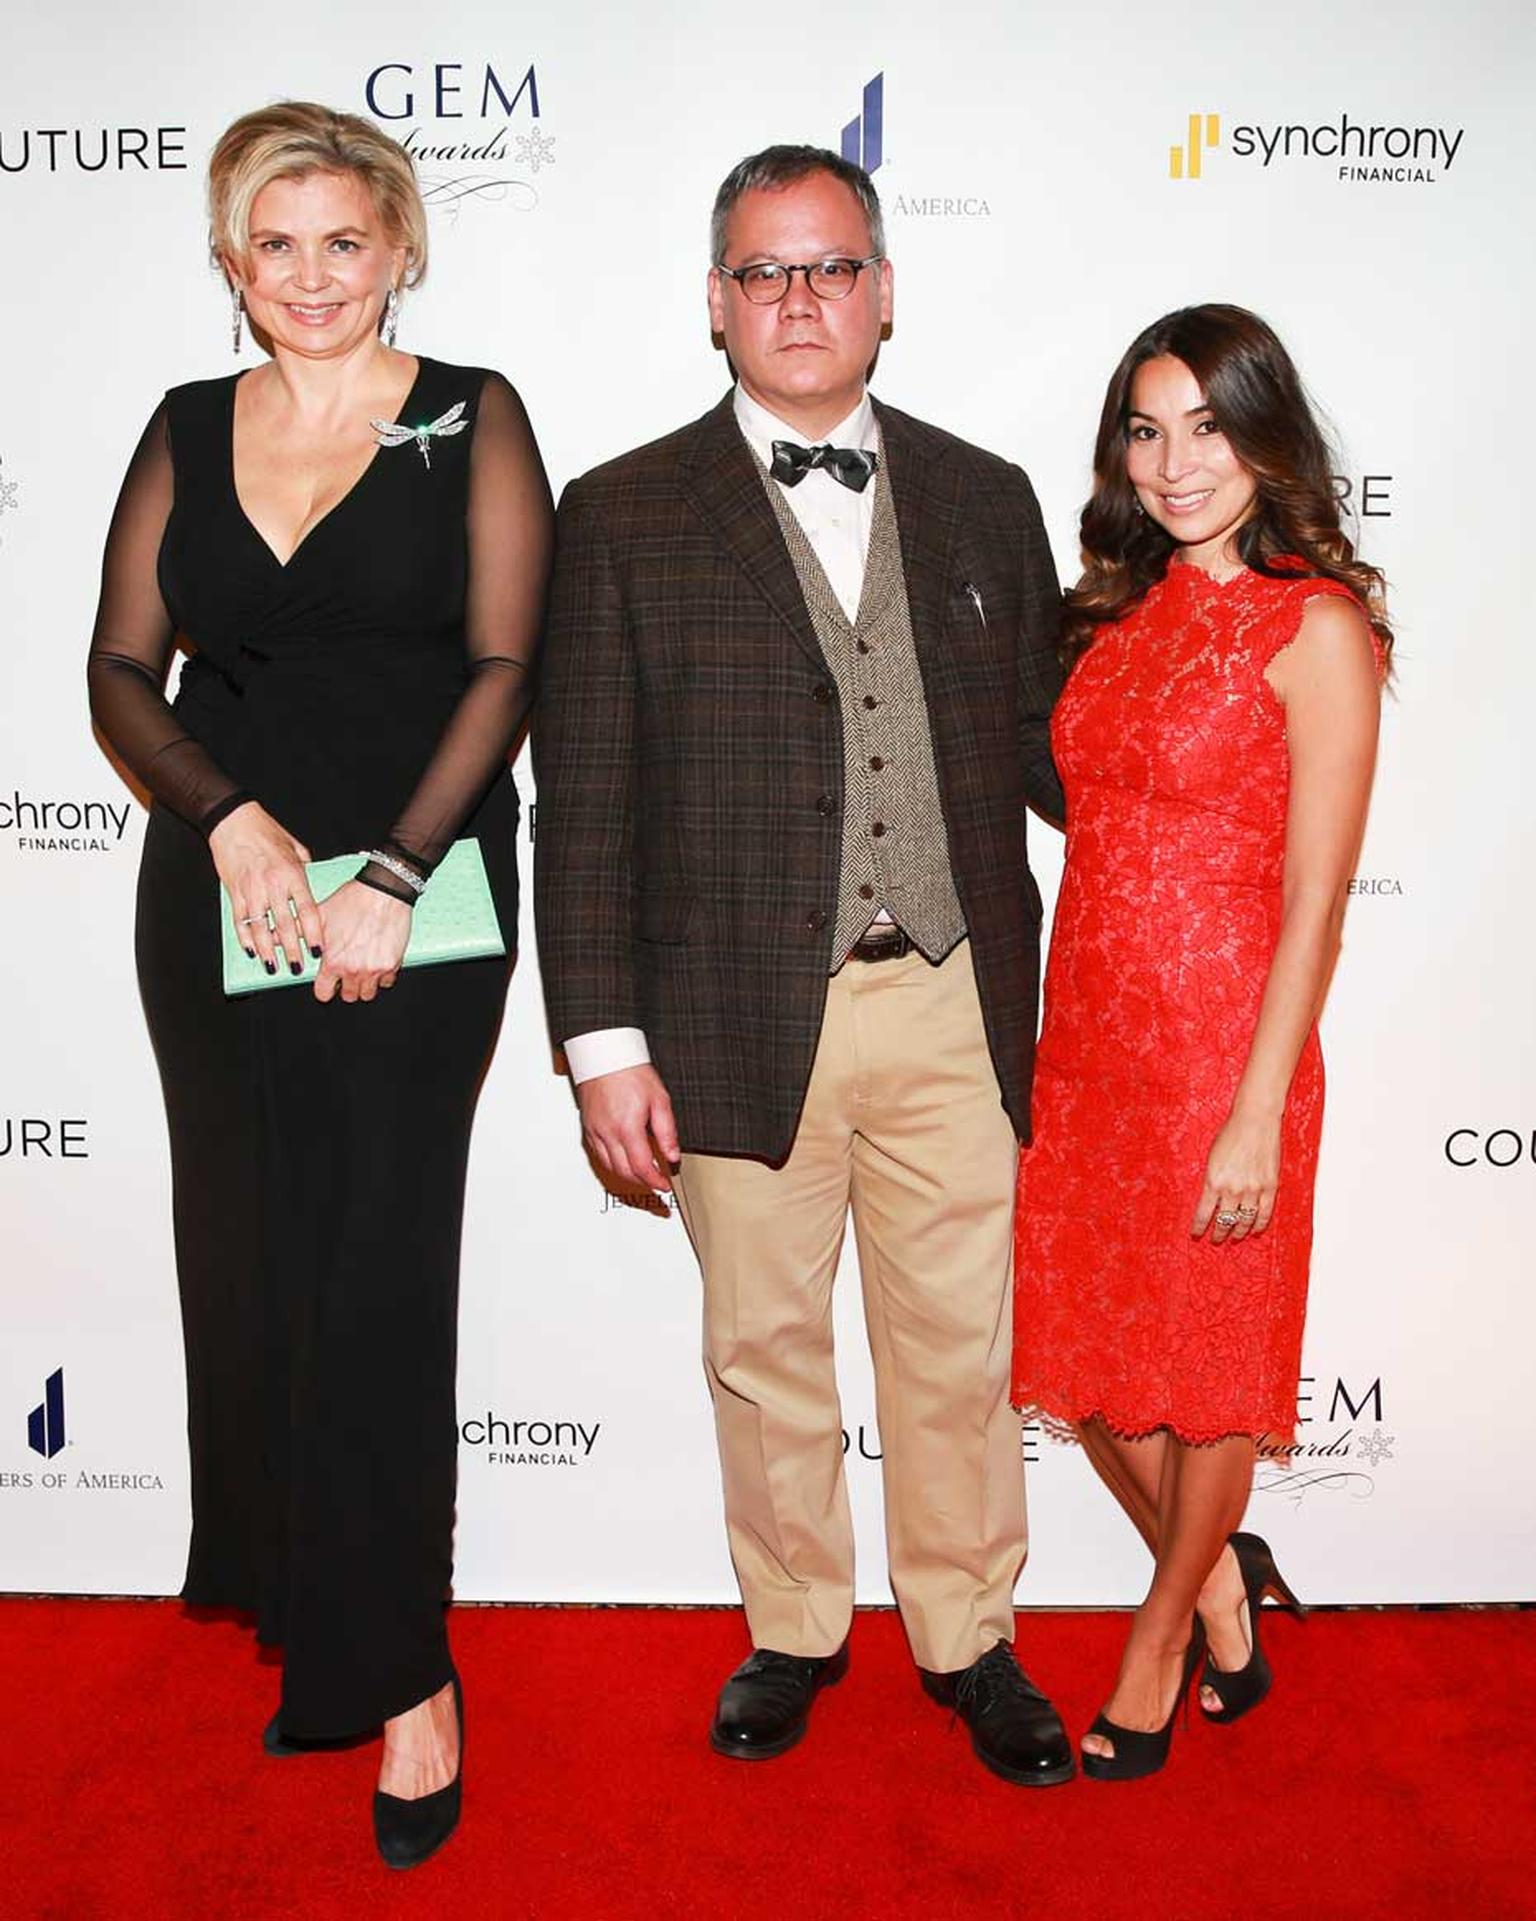 Our very own Maria Doulton, who was nominated for the Media Excellence award at the 2015 GEM Awards, alongside winner Claudia Mata and Jack Forster. Image: Ben Rosser/BFAnyc.com